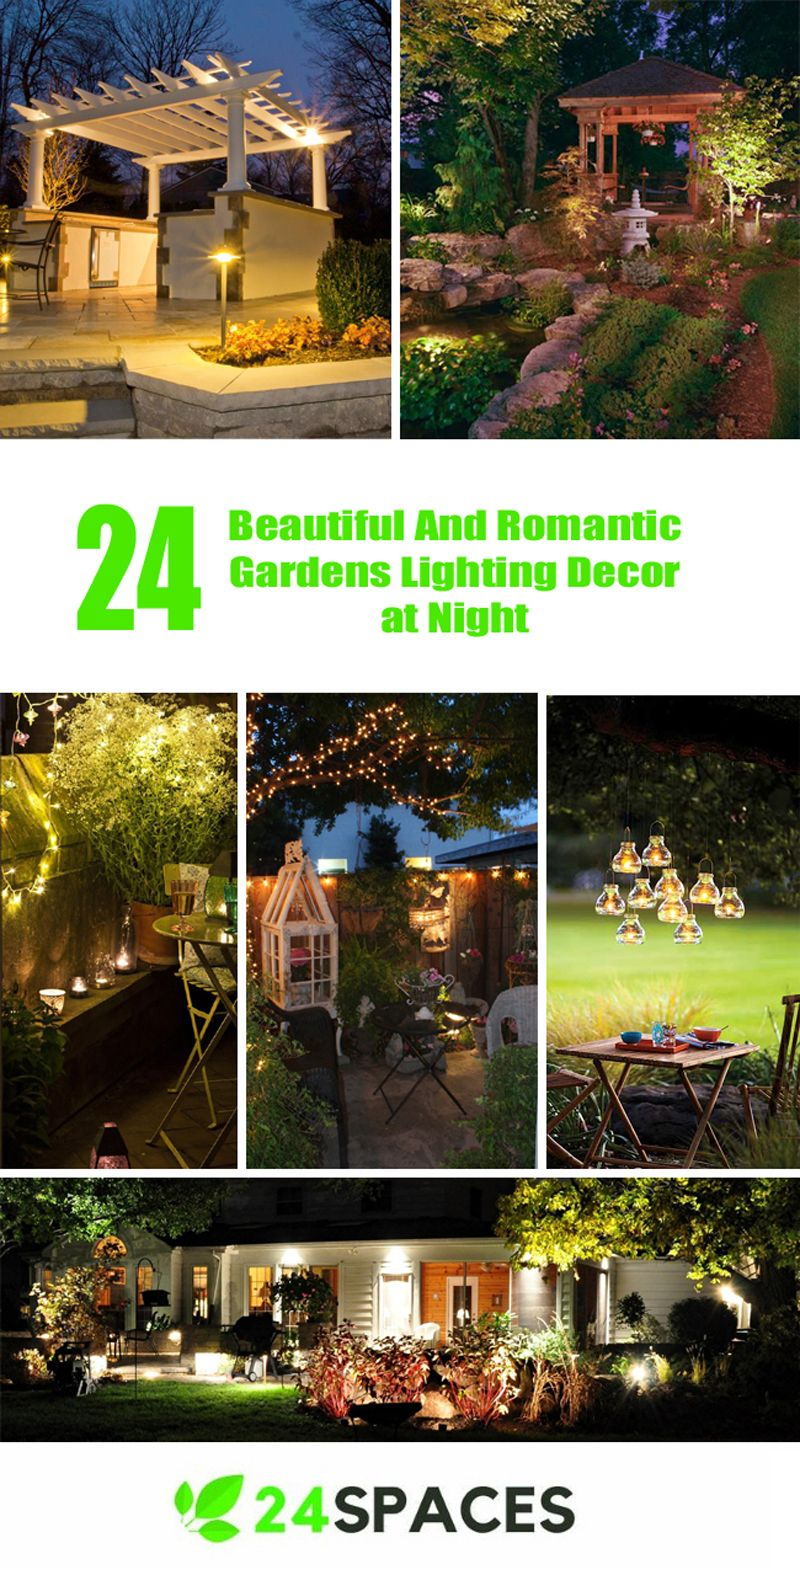 Garden landscape night   Beautiful And Romantic Gardens Lighting Decor at Night  Outdoor